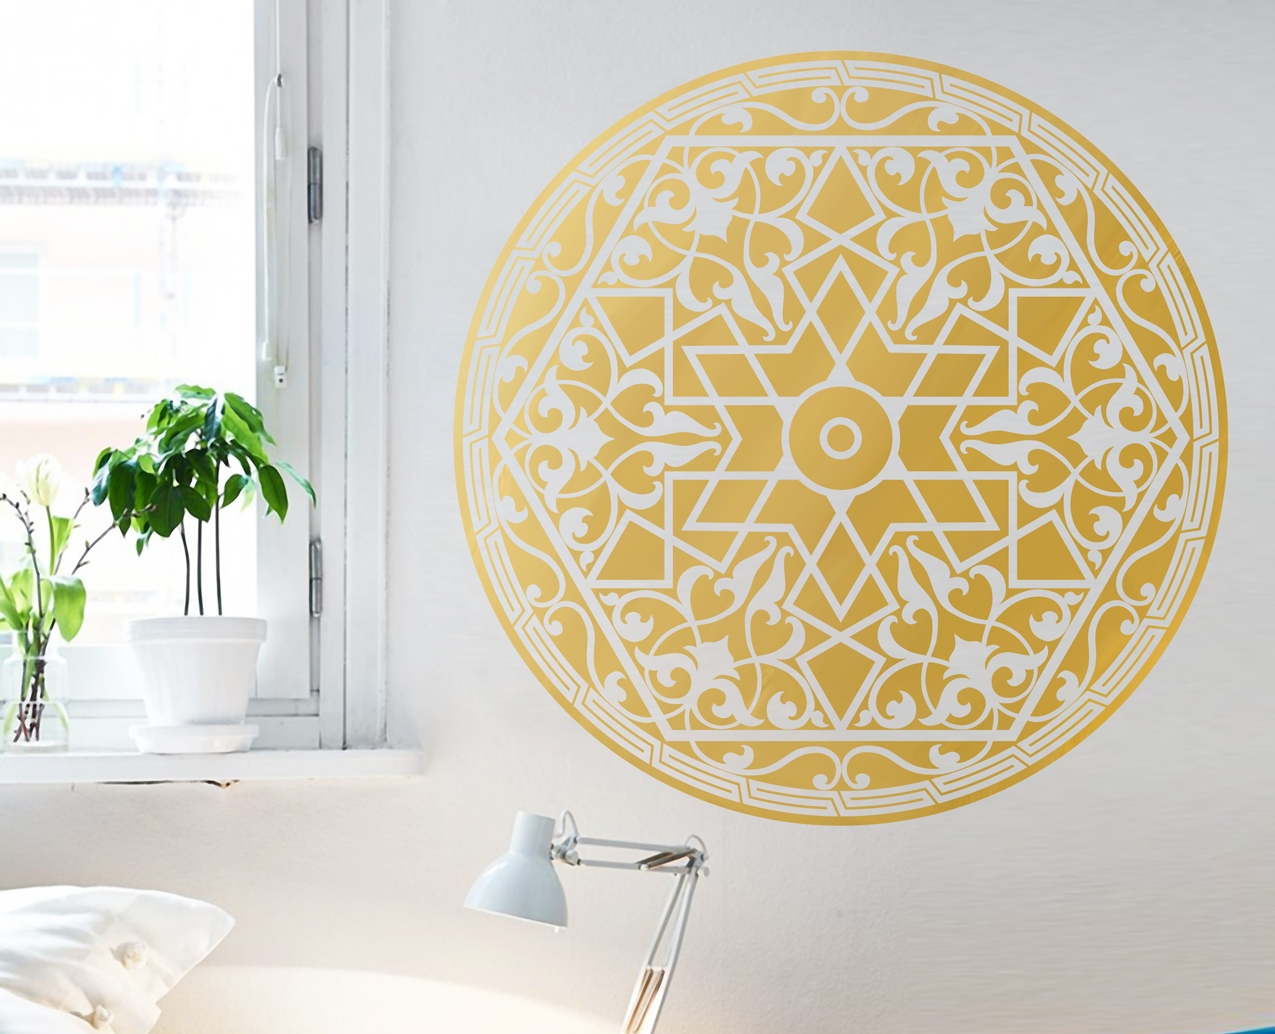 Arabic Pattern – Your Decal Shop | Nz Designer Wall Art Decals In Most Recent Arabic Wall Art (View 12 of 20)